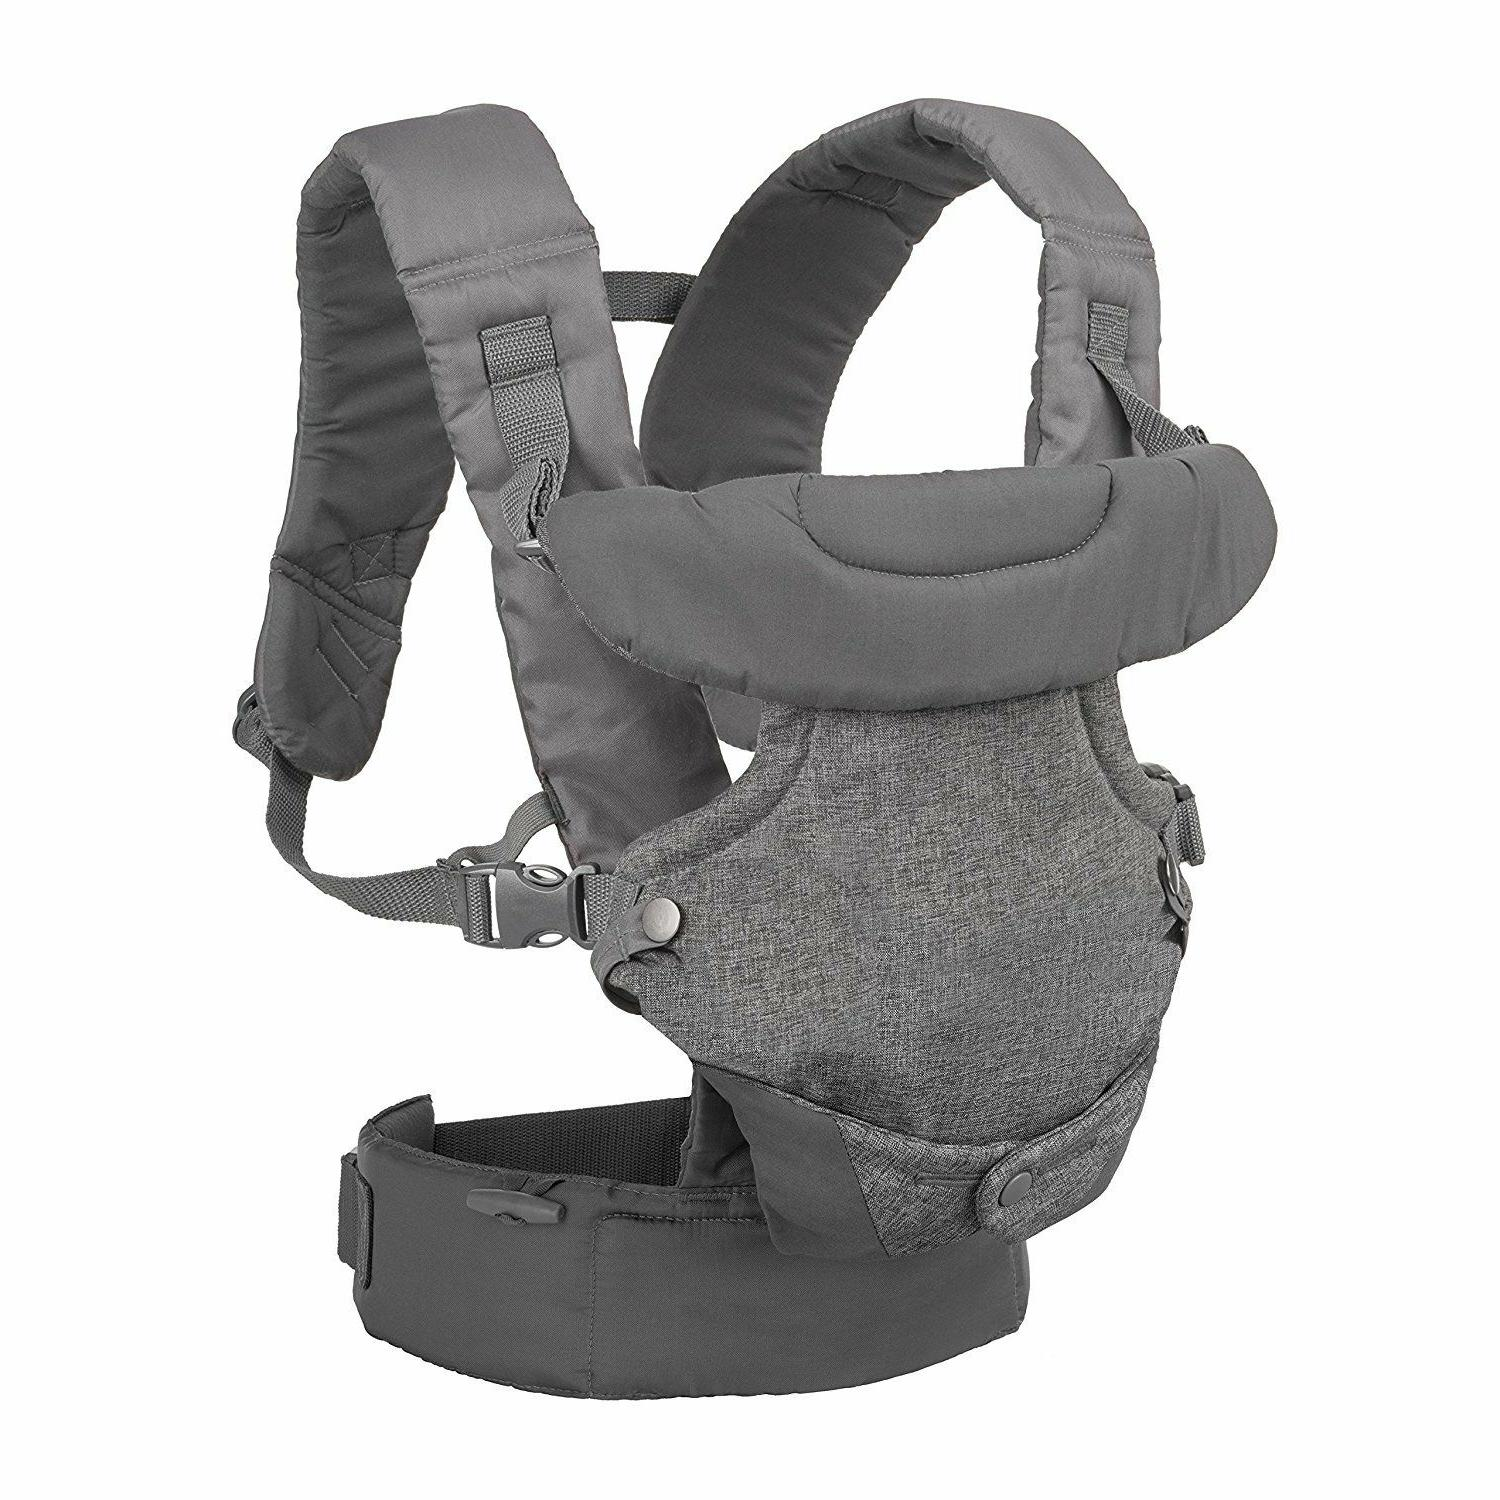 Infantino Advanced 4-in-1 Convertible Carrier, Light